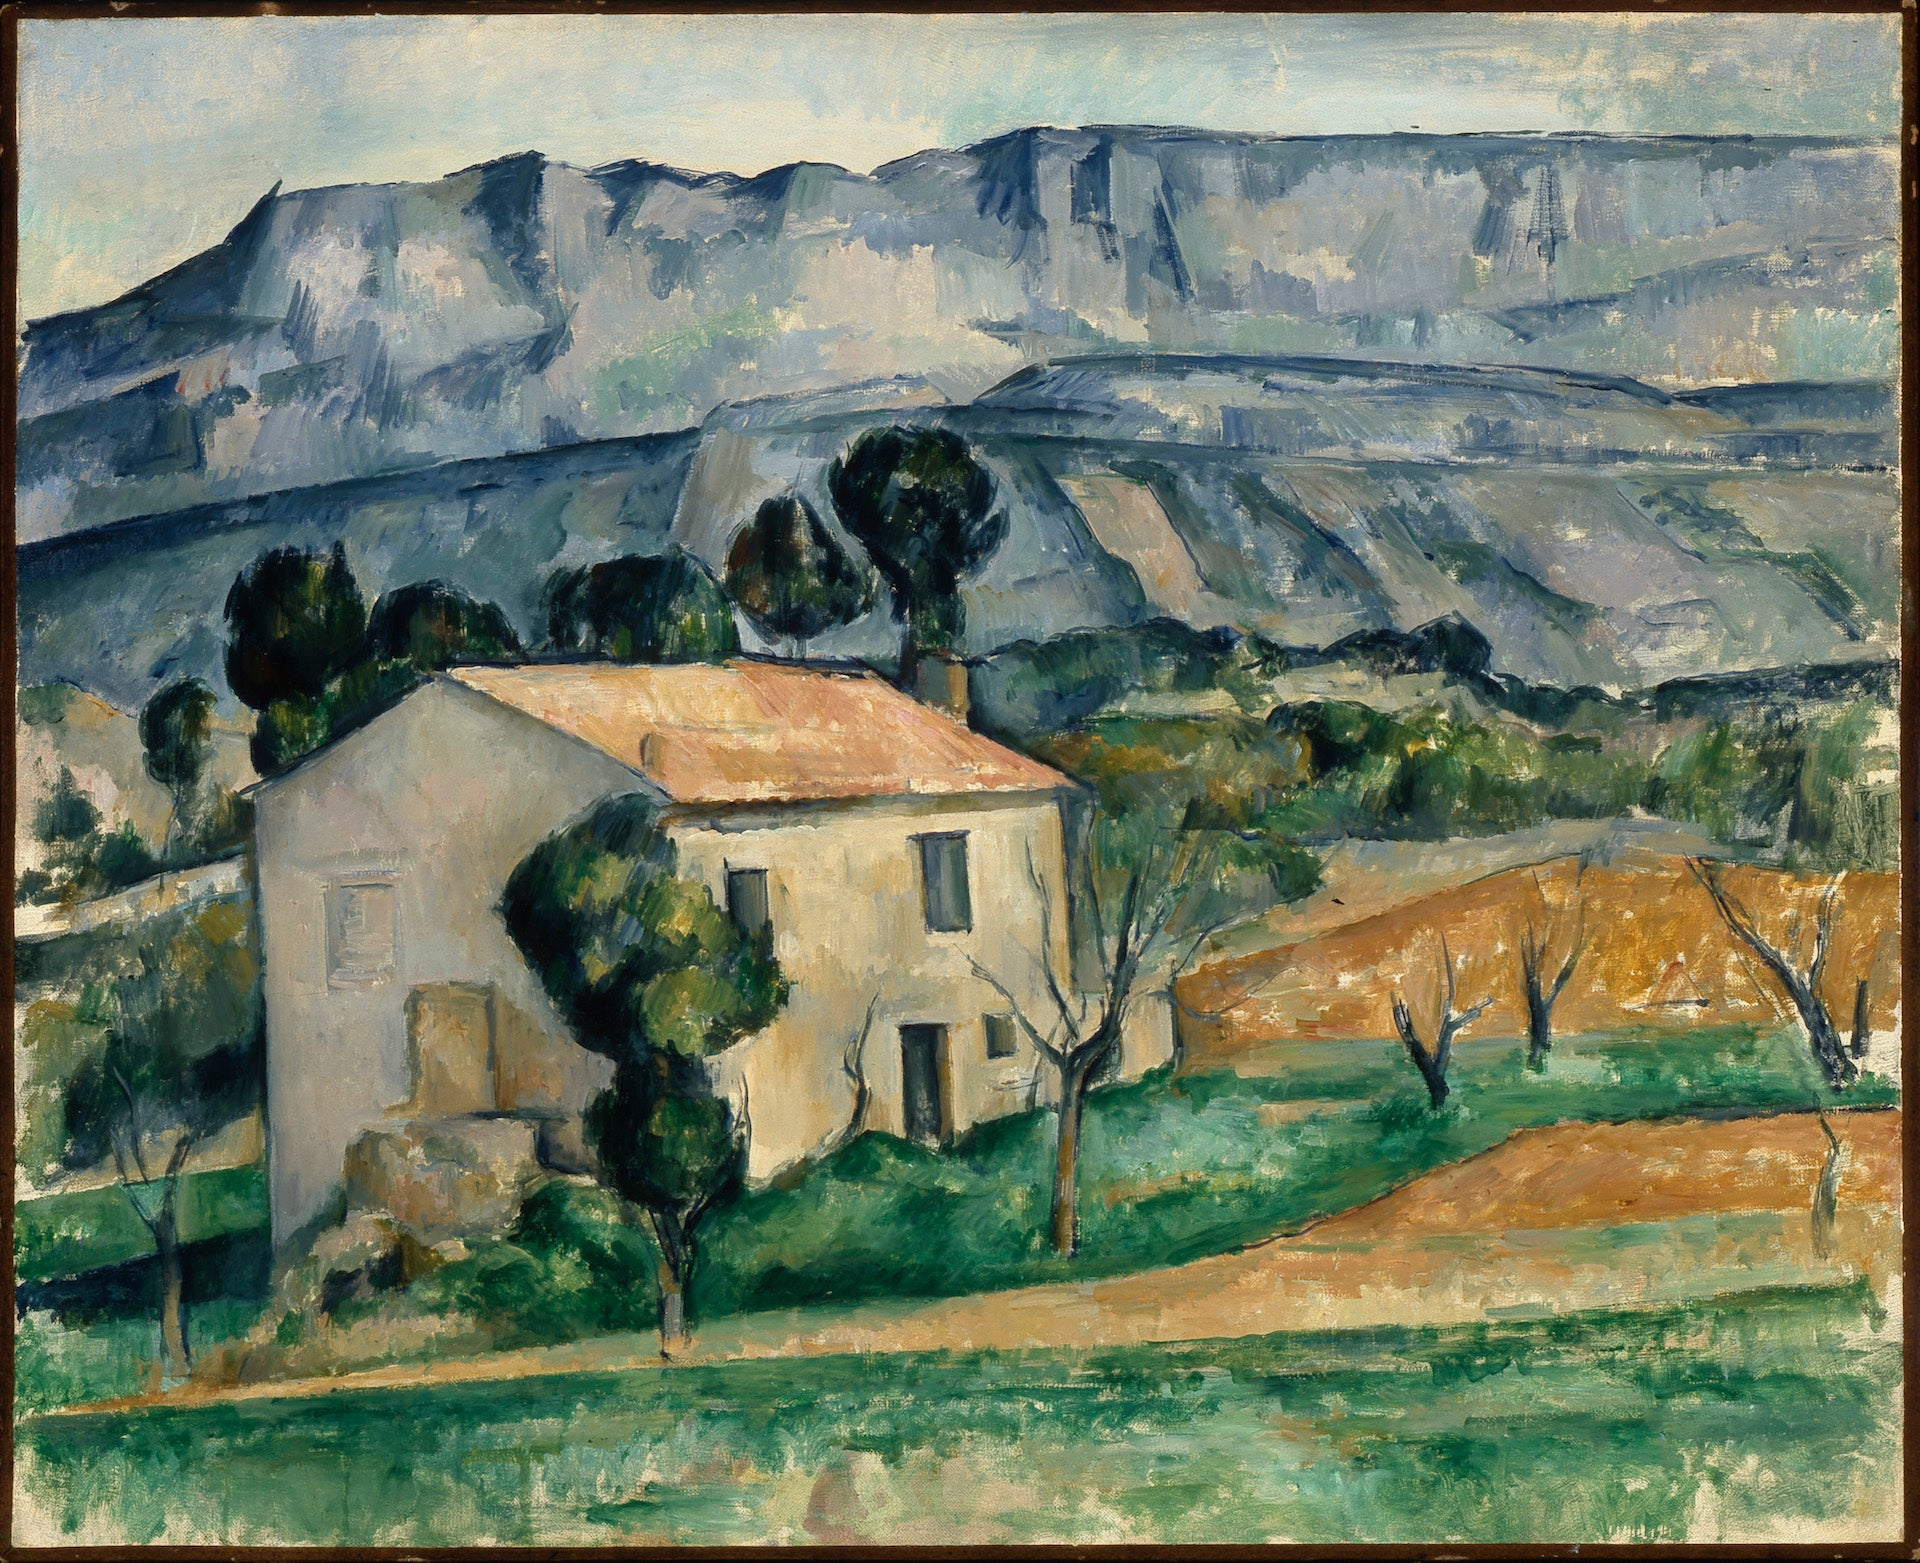 House in Provence by Paul Cezanne, c. 1885. Photo courtesy of the Indianapolis Museum of Art at Newfields